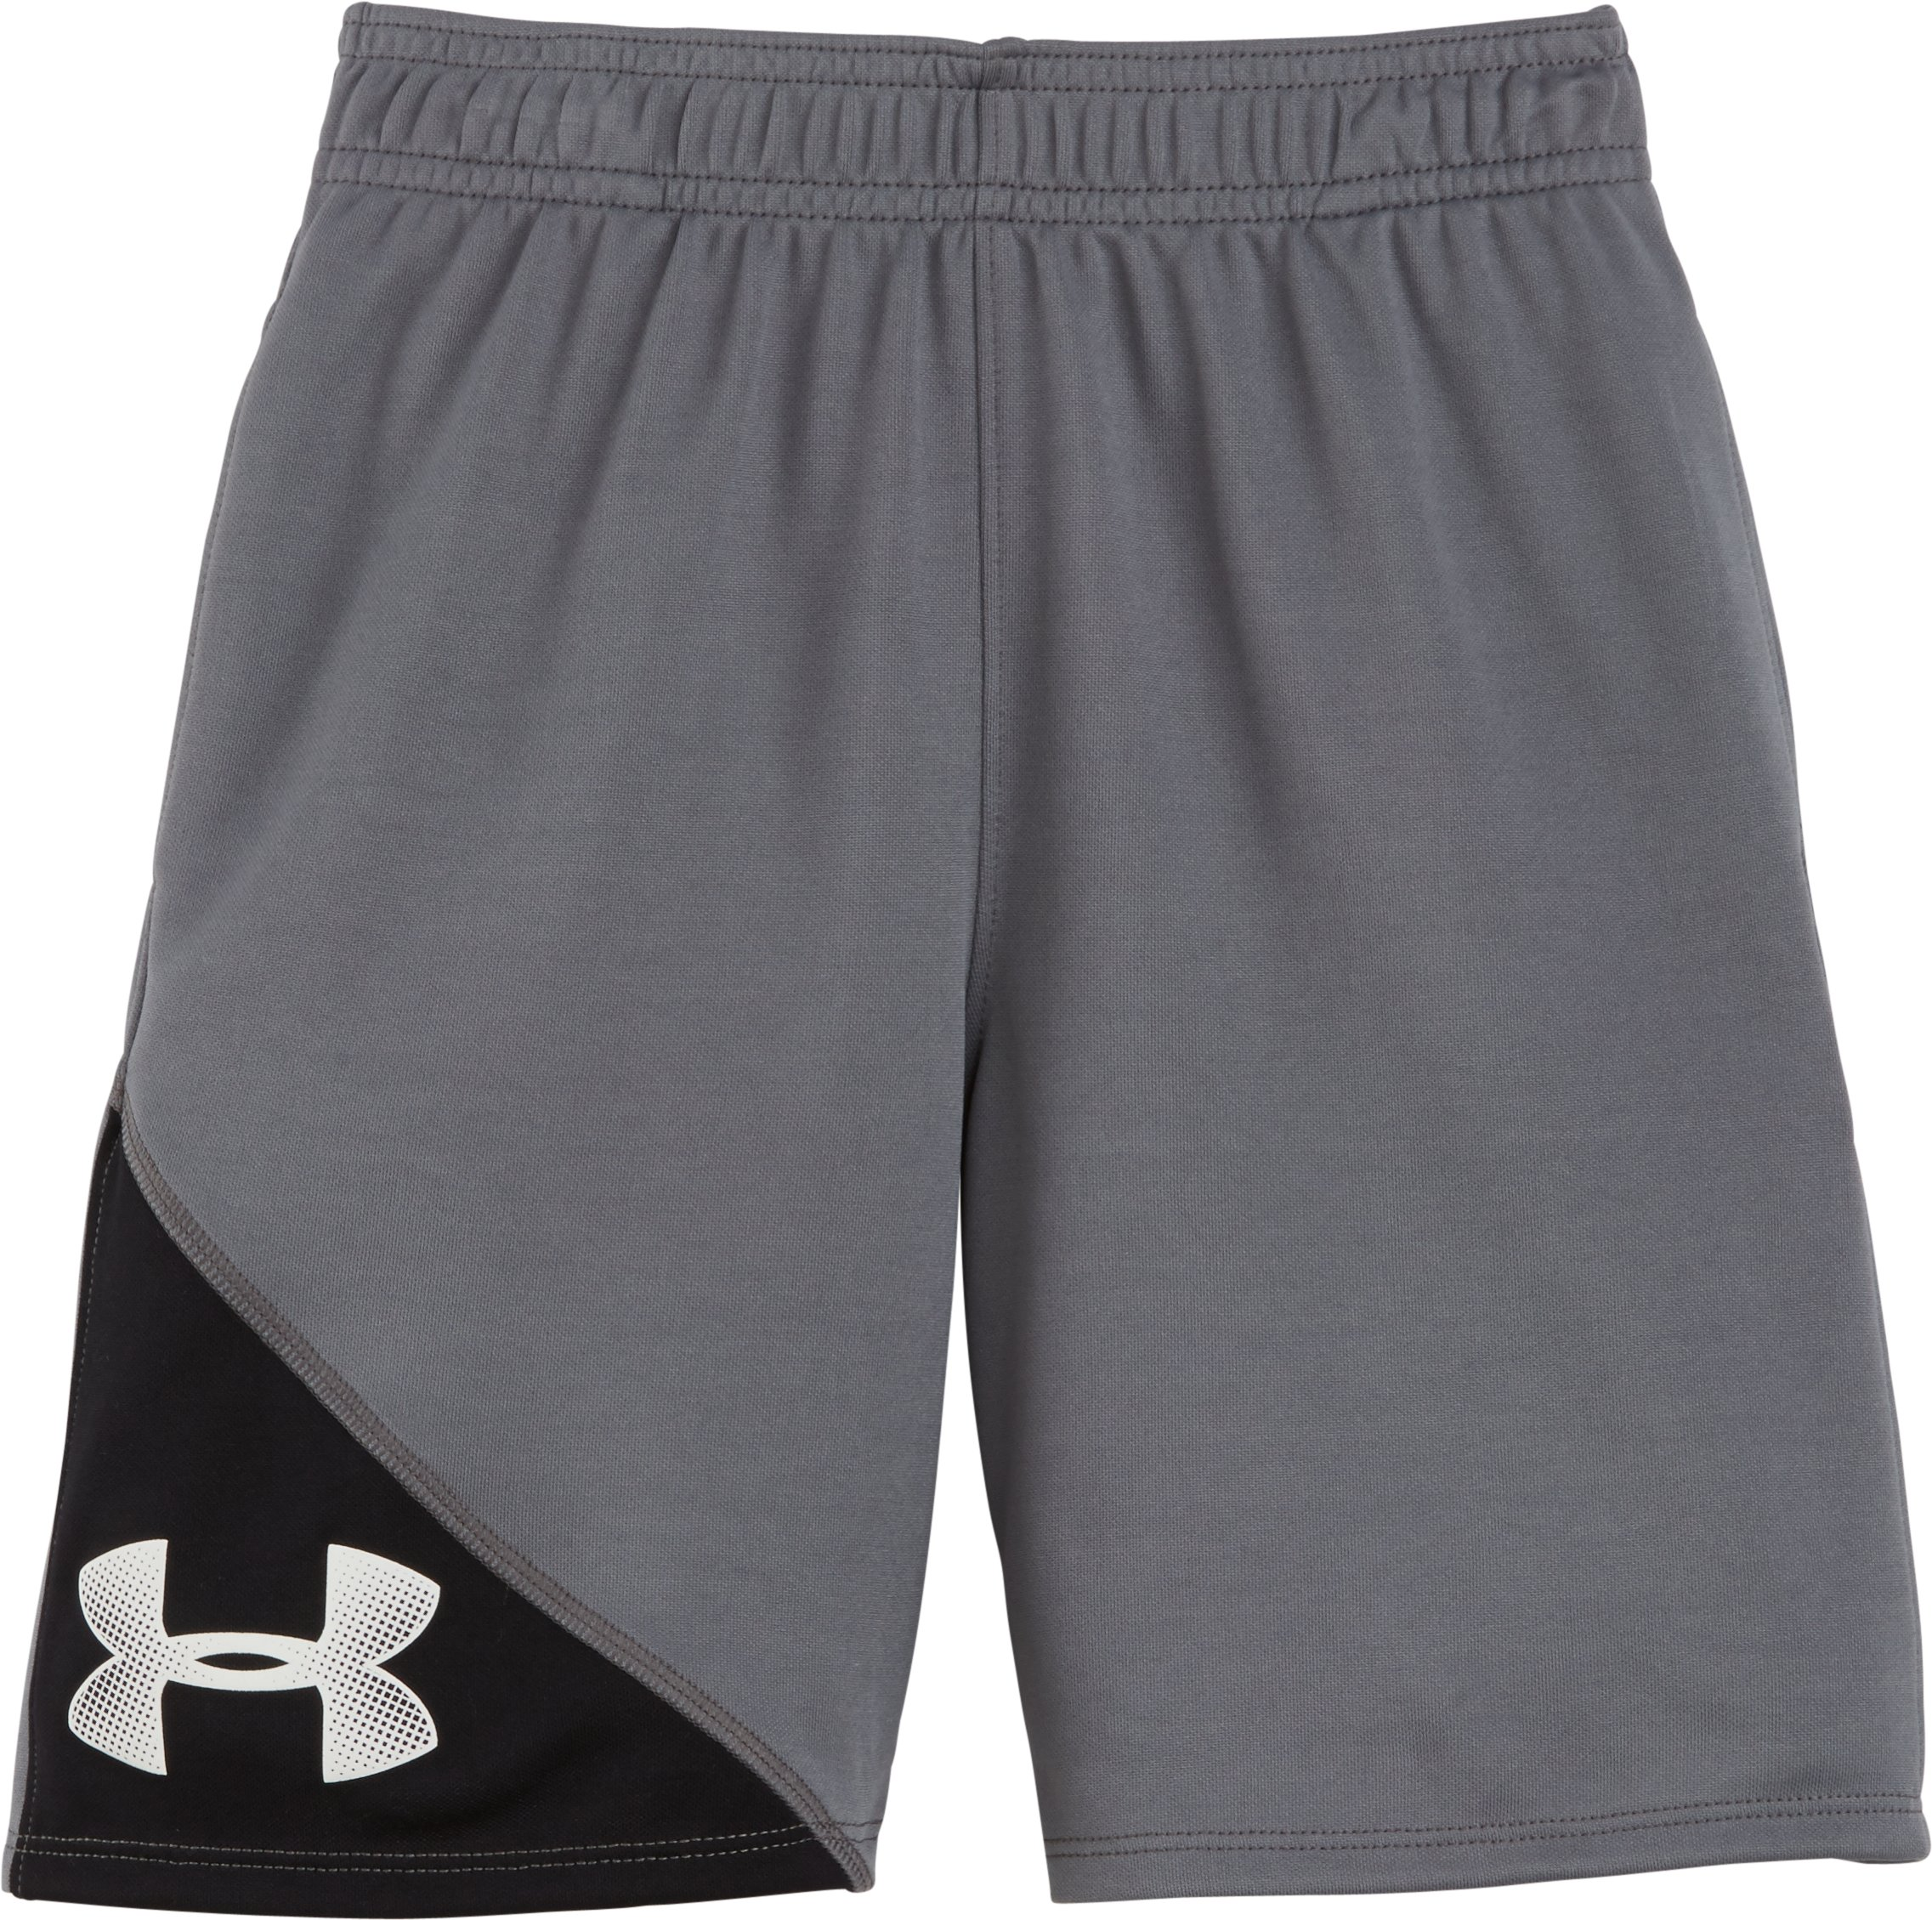 Boys' Toddler UA Prototype Shorts, Graphite